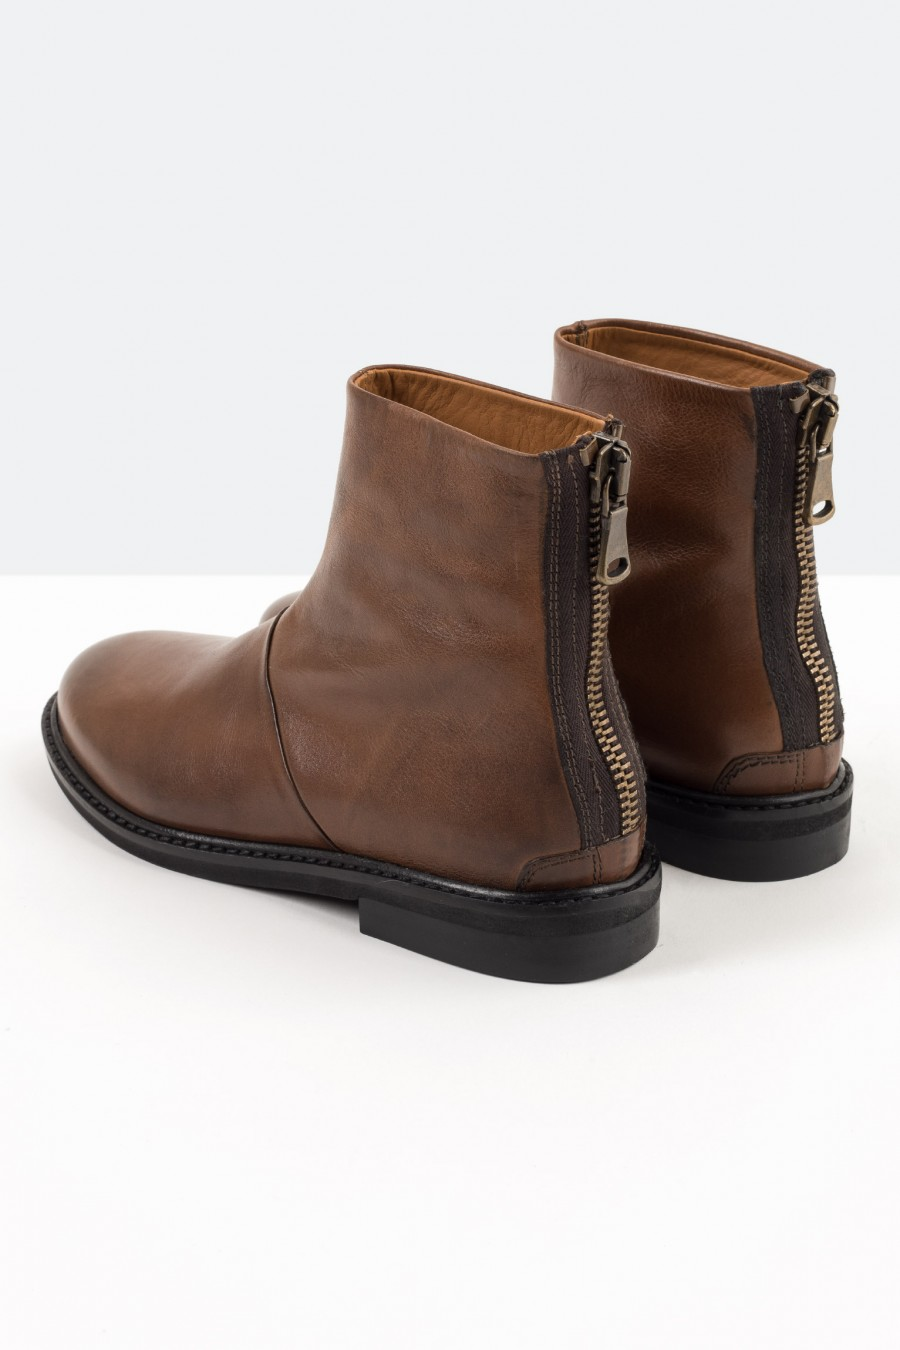 Brown boots with back zip